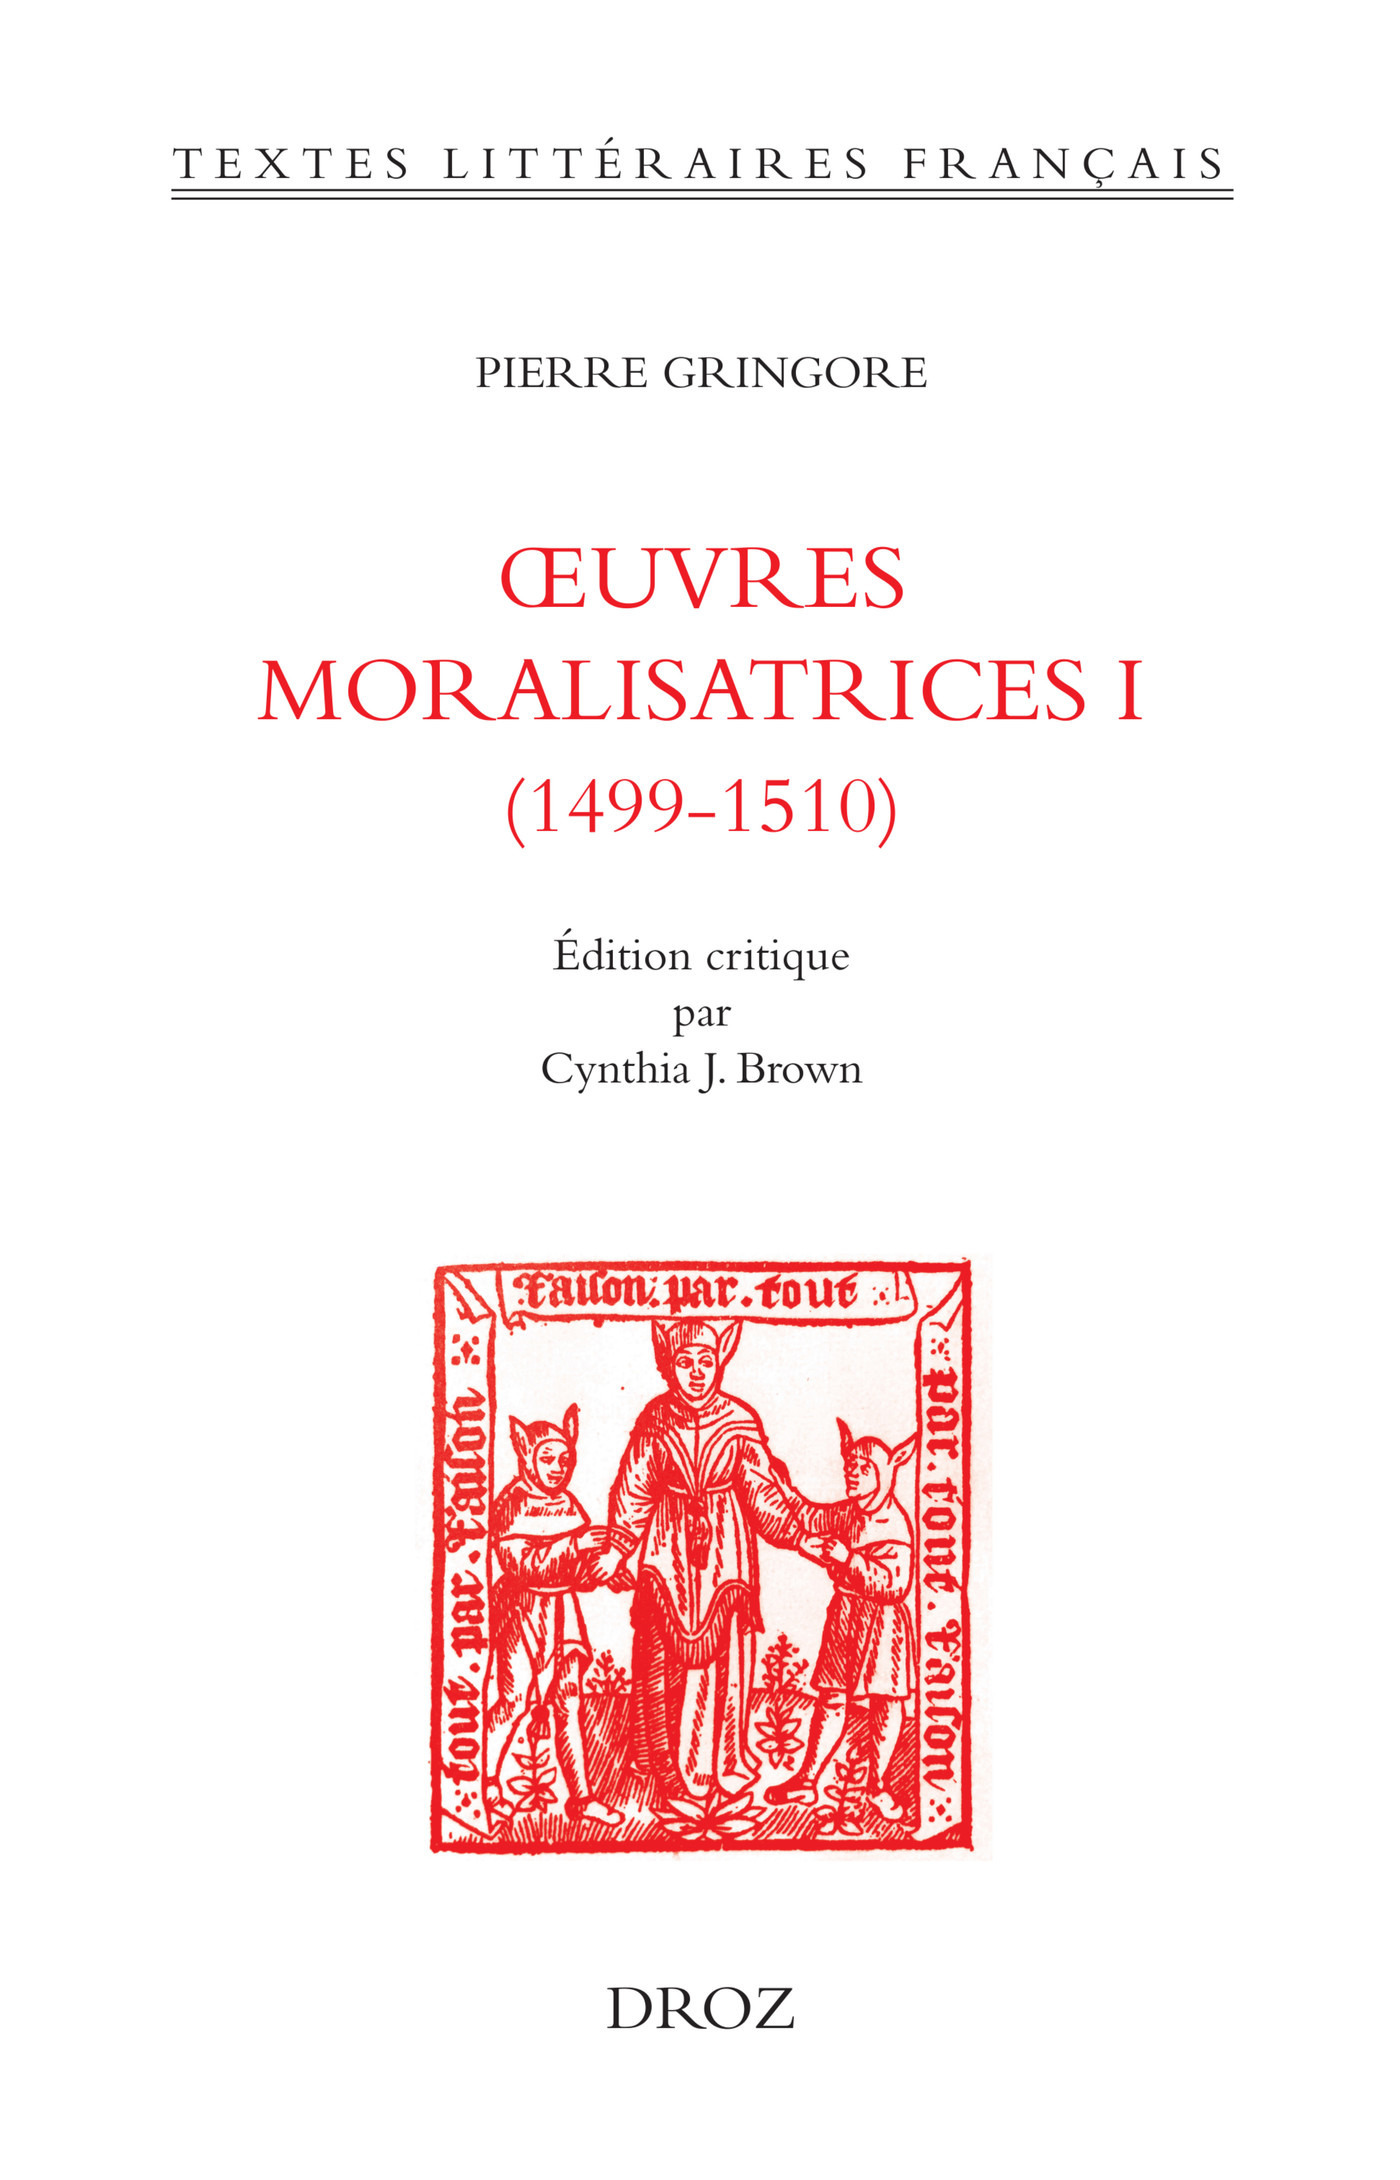 OEuvres moralisatrices I (1499-1510)